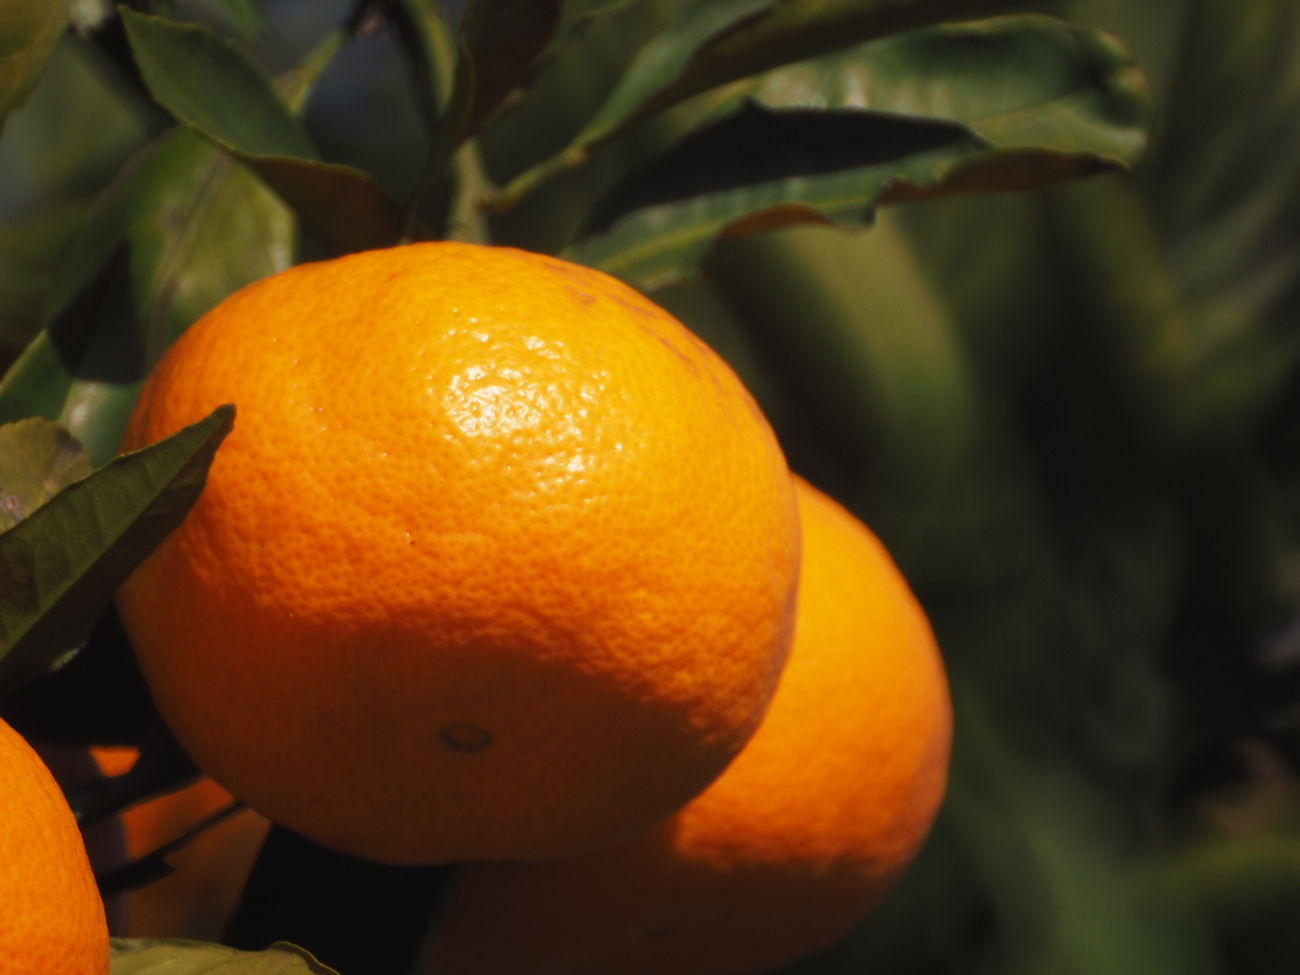 手持ち400mmでブレなかったからup,ただのミカンです(笑)。Orange - Fruit Citrus Fruit Mirrorlens Taking Photos Taking Pictures 400mm Orange Color Fruit Orange Tree